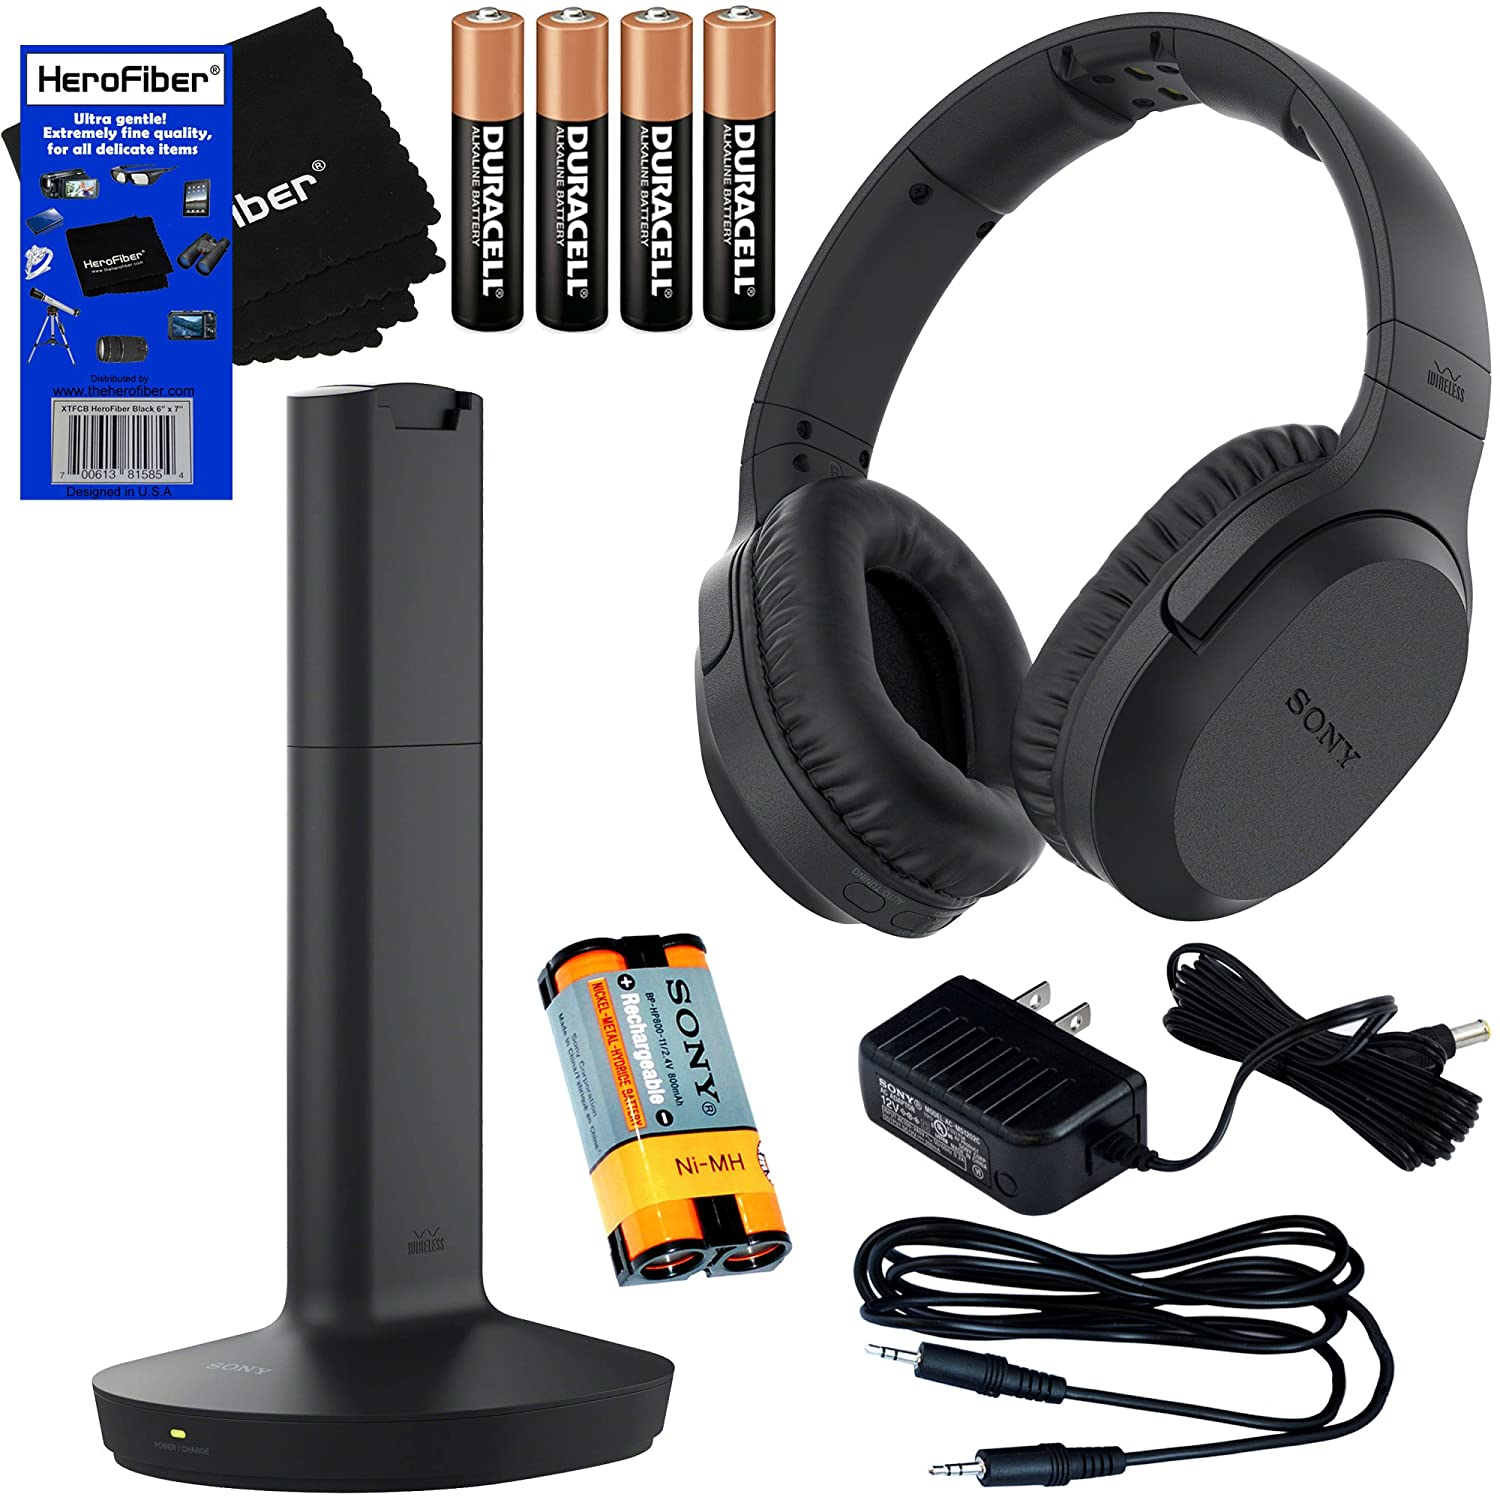 Sony MDRRF995RK Wireless RF (Radio Frequency) Headphone with Transmitter Base Station + Sony Rechargeable Battery + 4 AAA Batteries + Stereo Connecting Cable + AC Adaptor + HeroFiber Cleaning Cloth